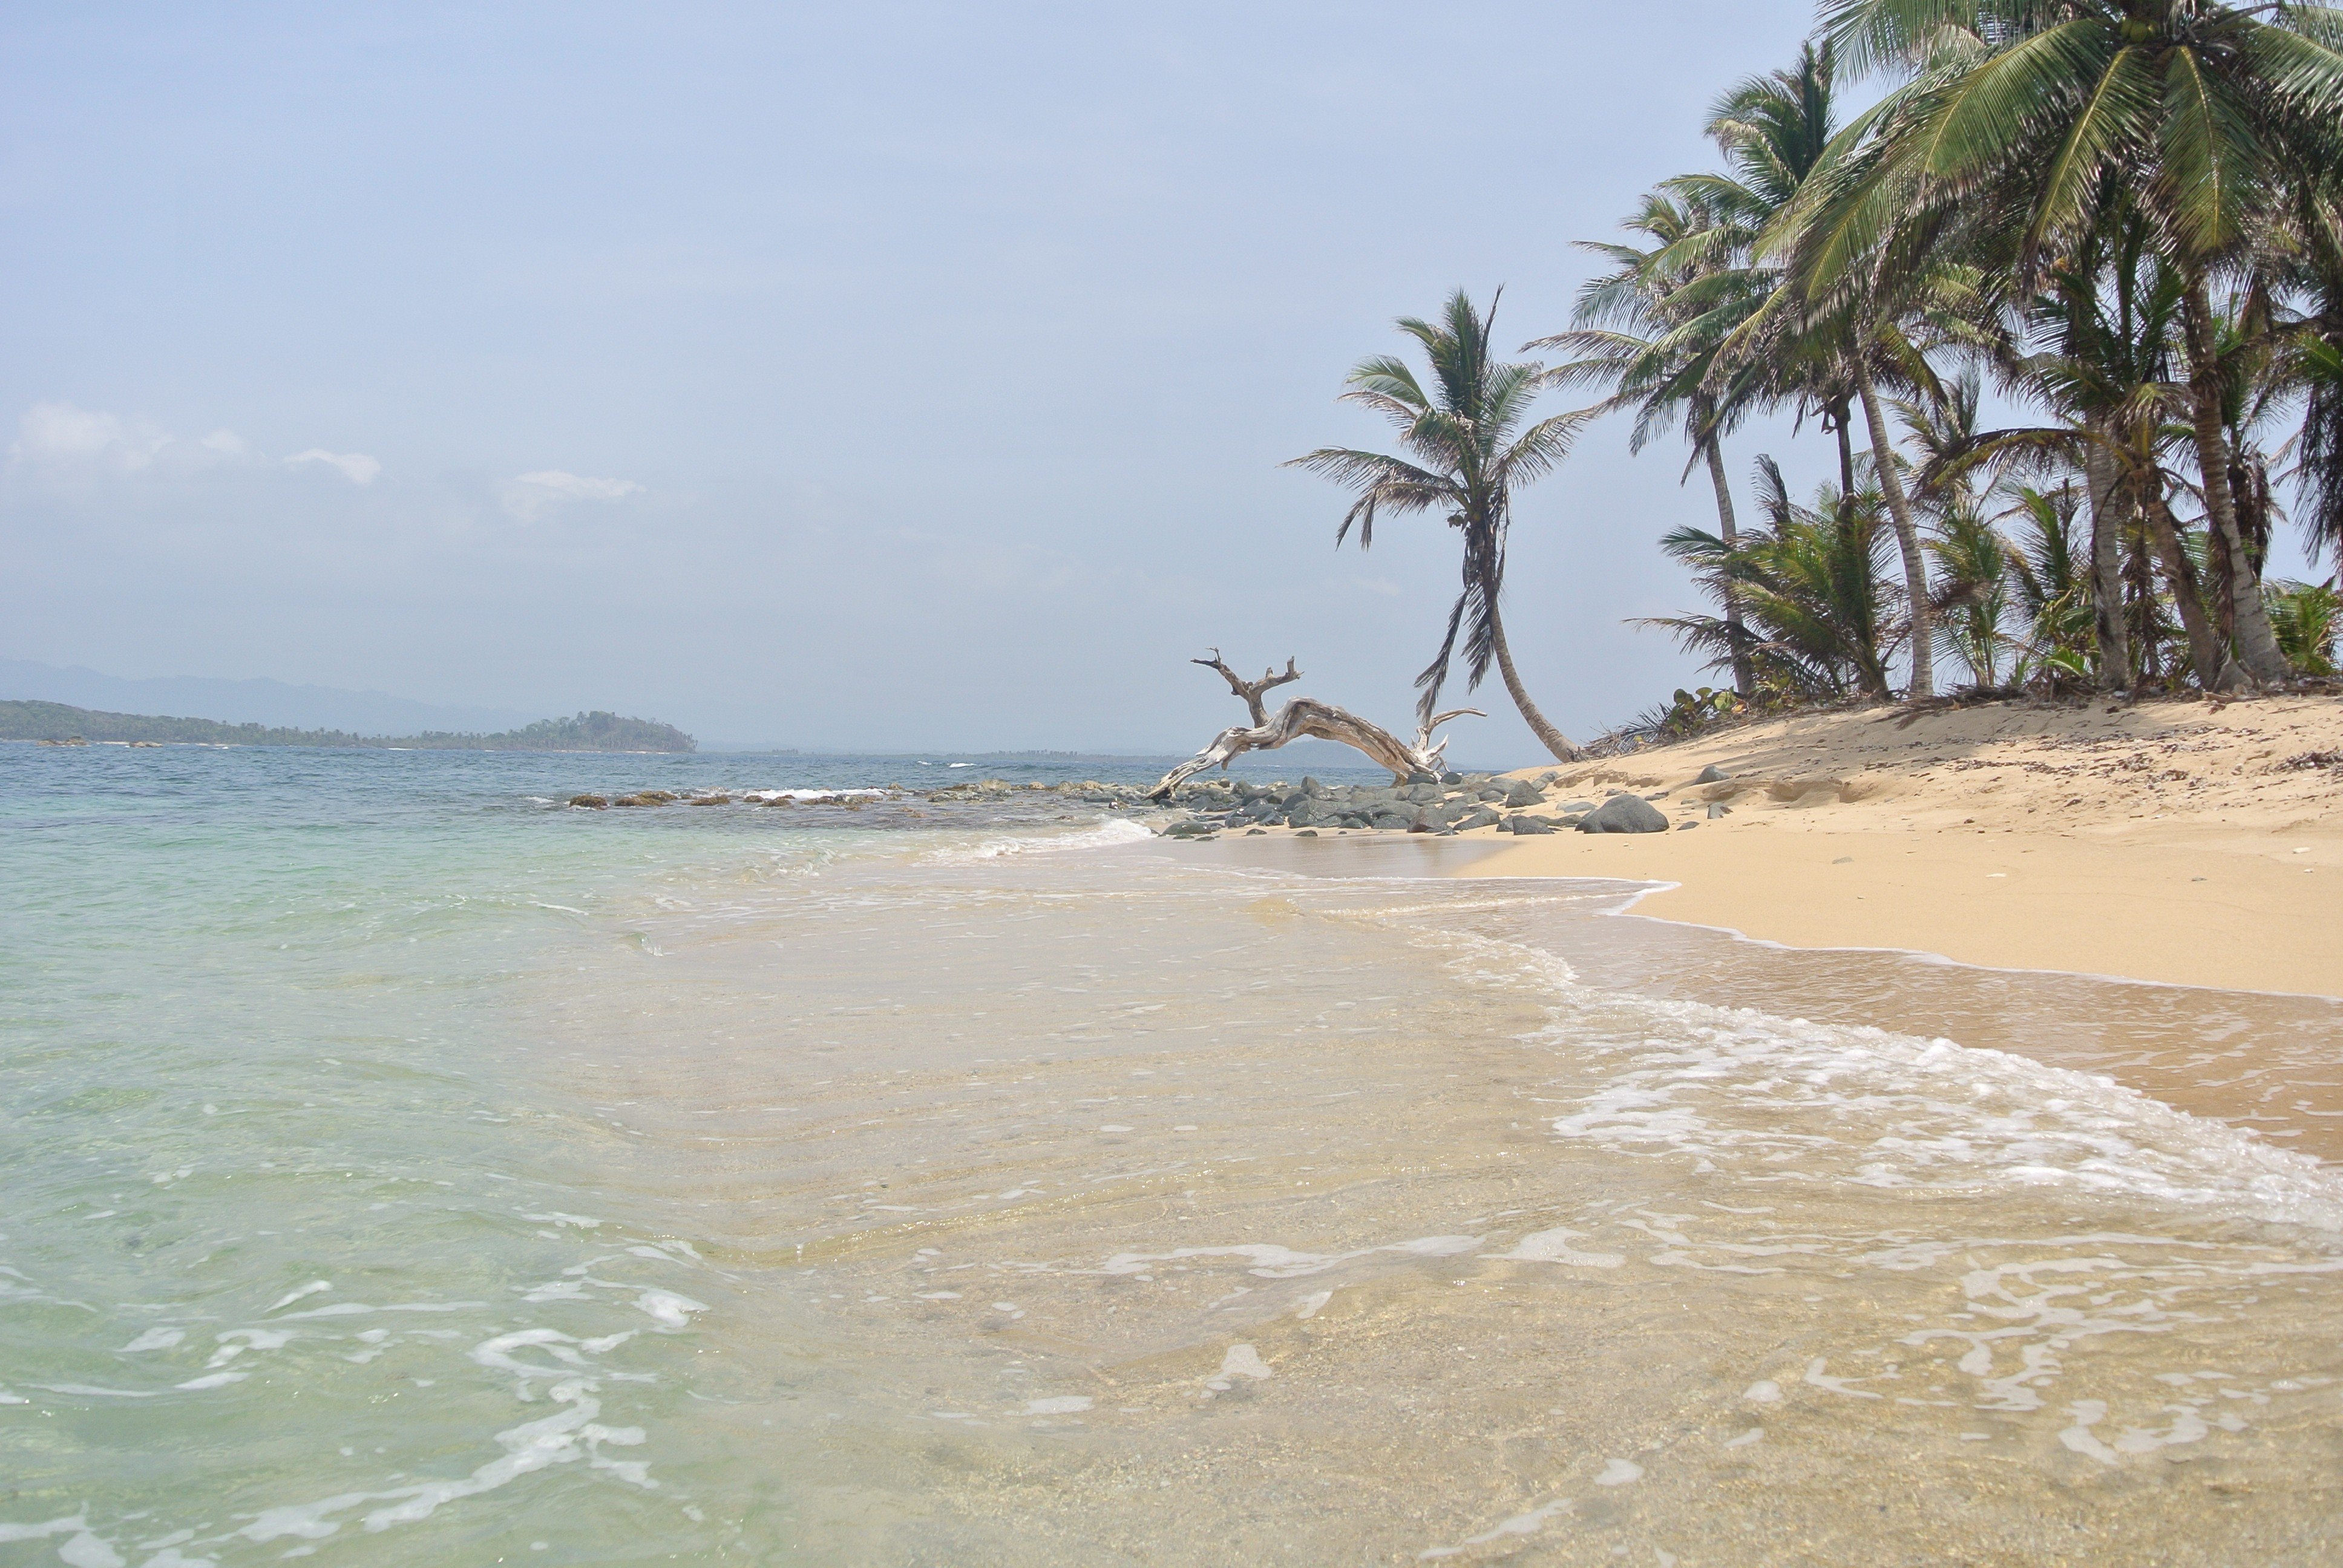 Beautiful beaches and clear blue sea can be found at the Kuna Yala Islands in Panama.